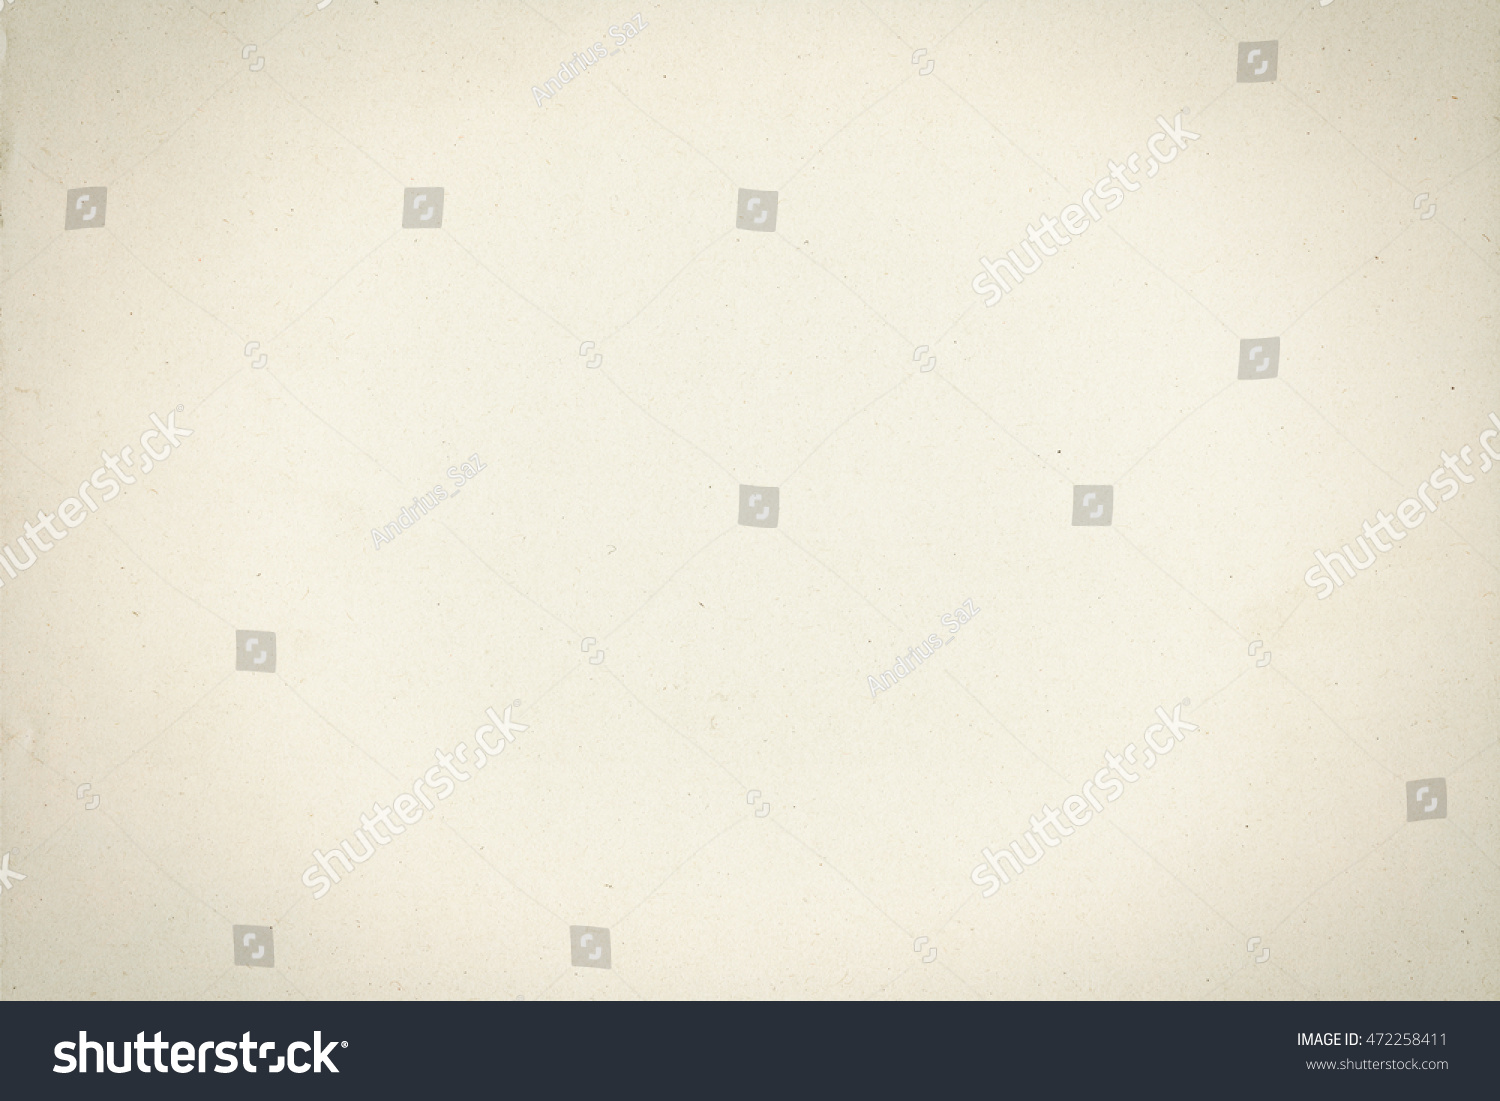 high resolution hi res brown empty stock photo 472258411